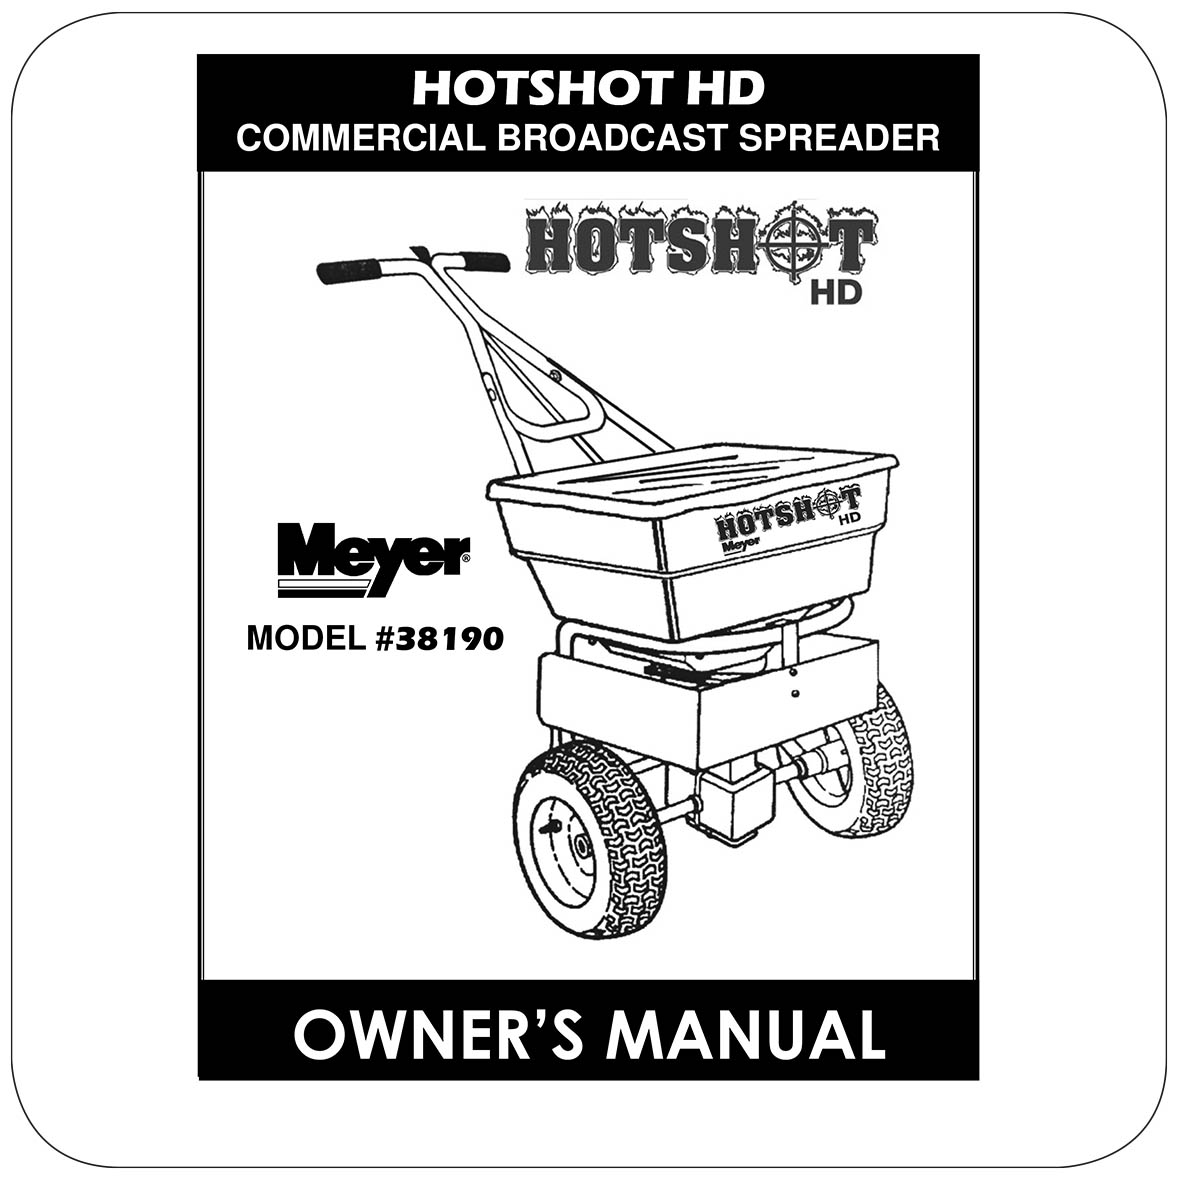 Owners Manual HotShot 100HD - 38190